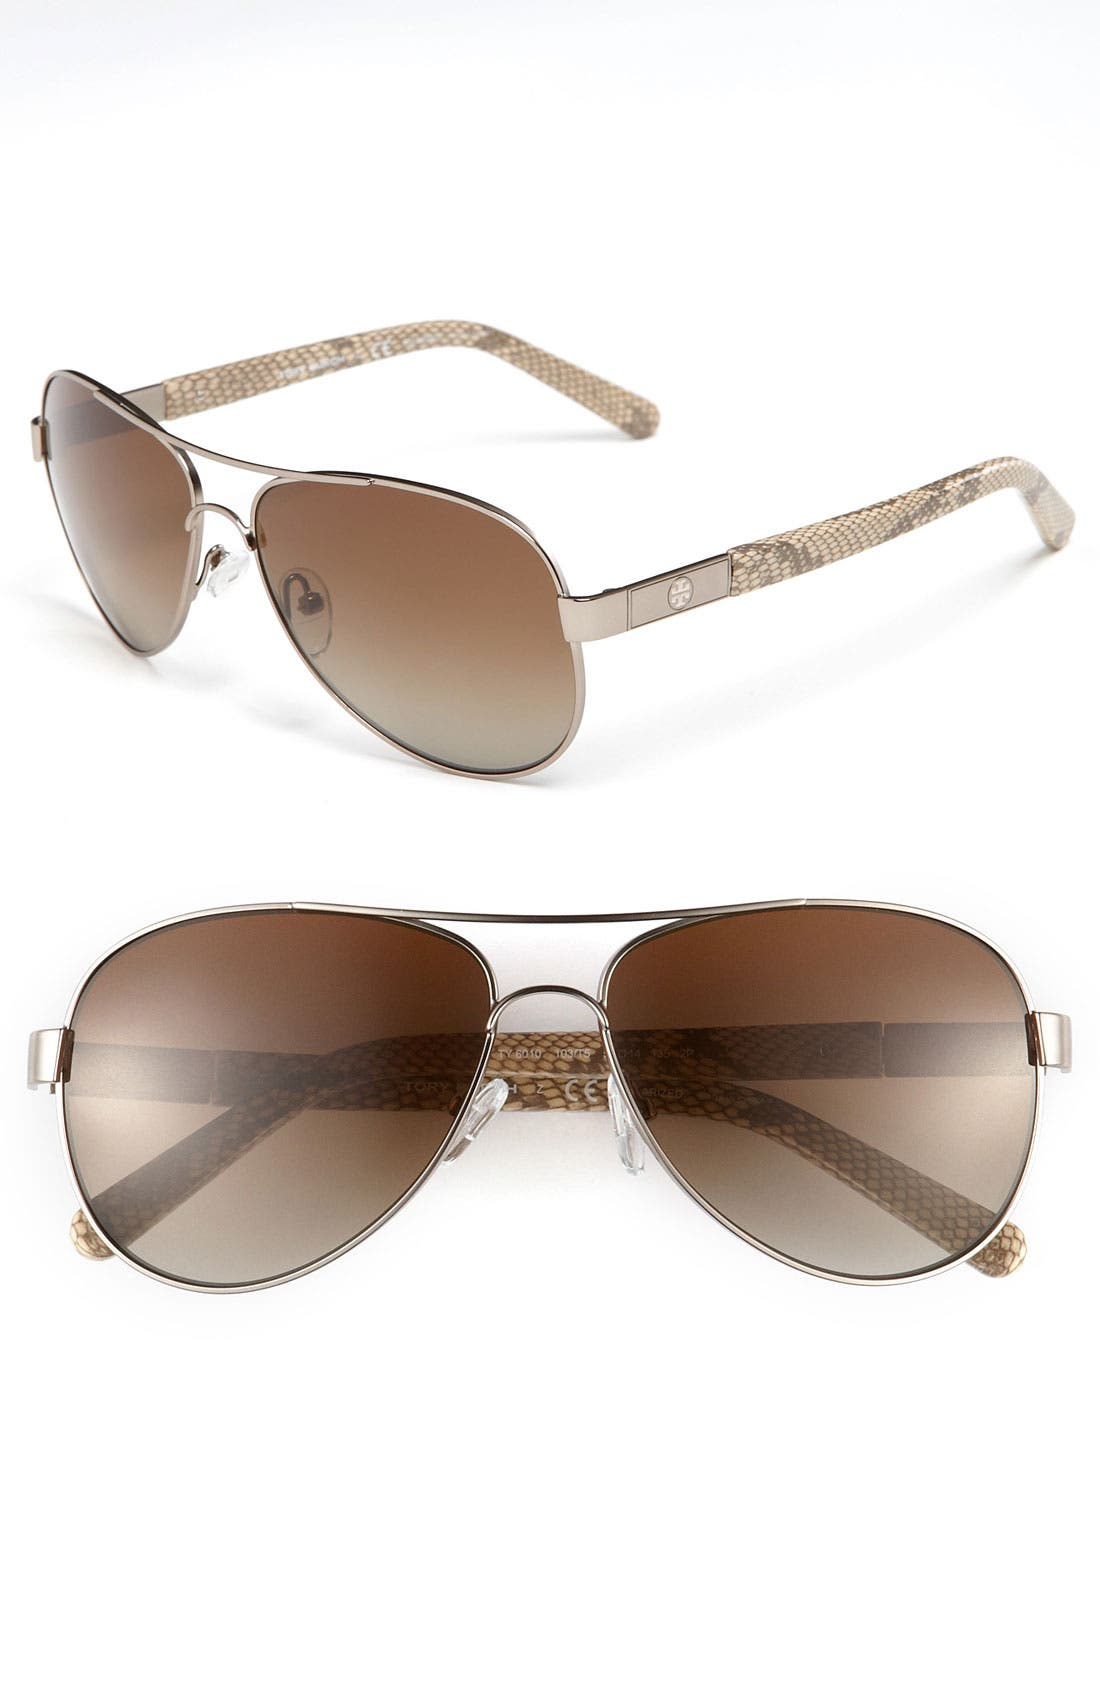 Alternate Image 1 Selected - Tory Burch 'Small' 57mm Polarized Metal Aviator Sunglasses